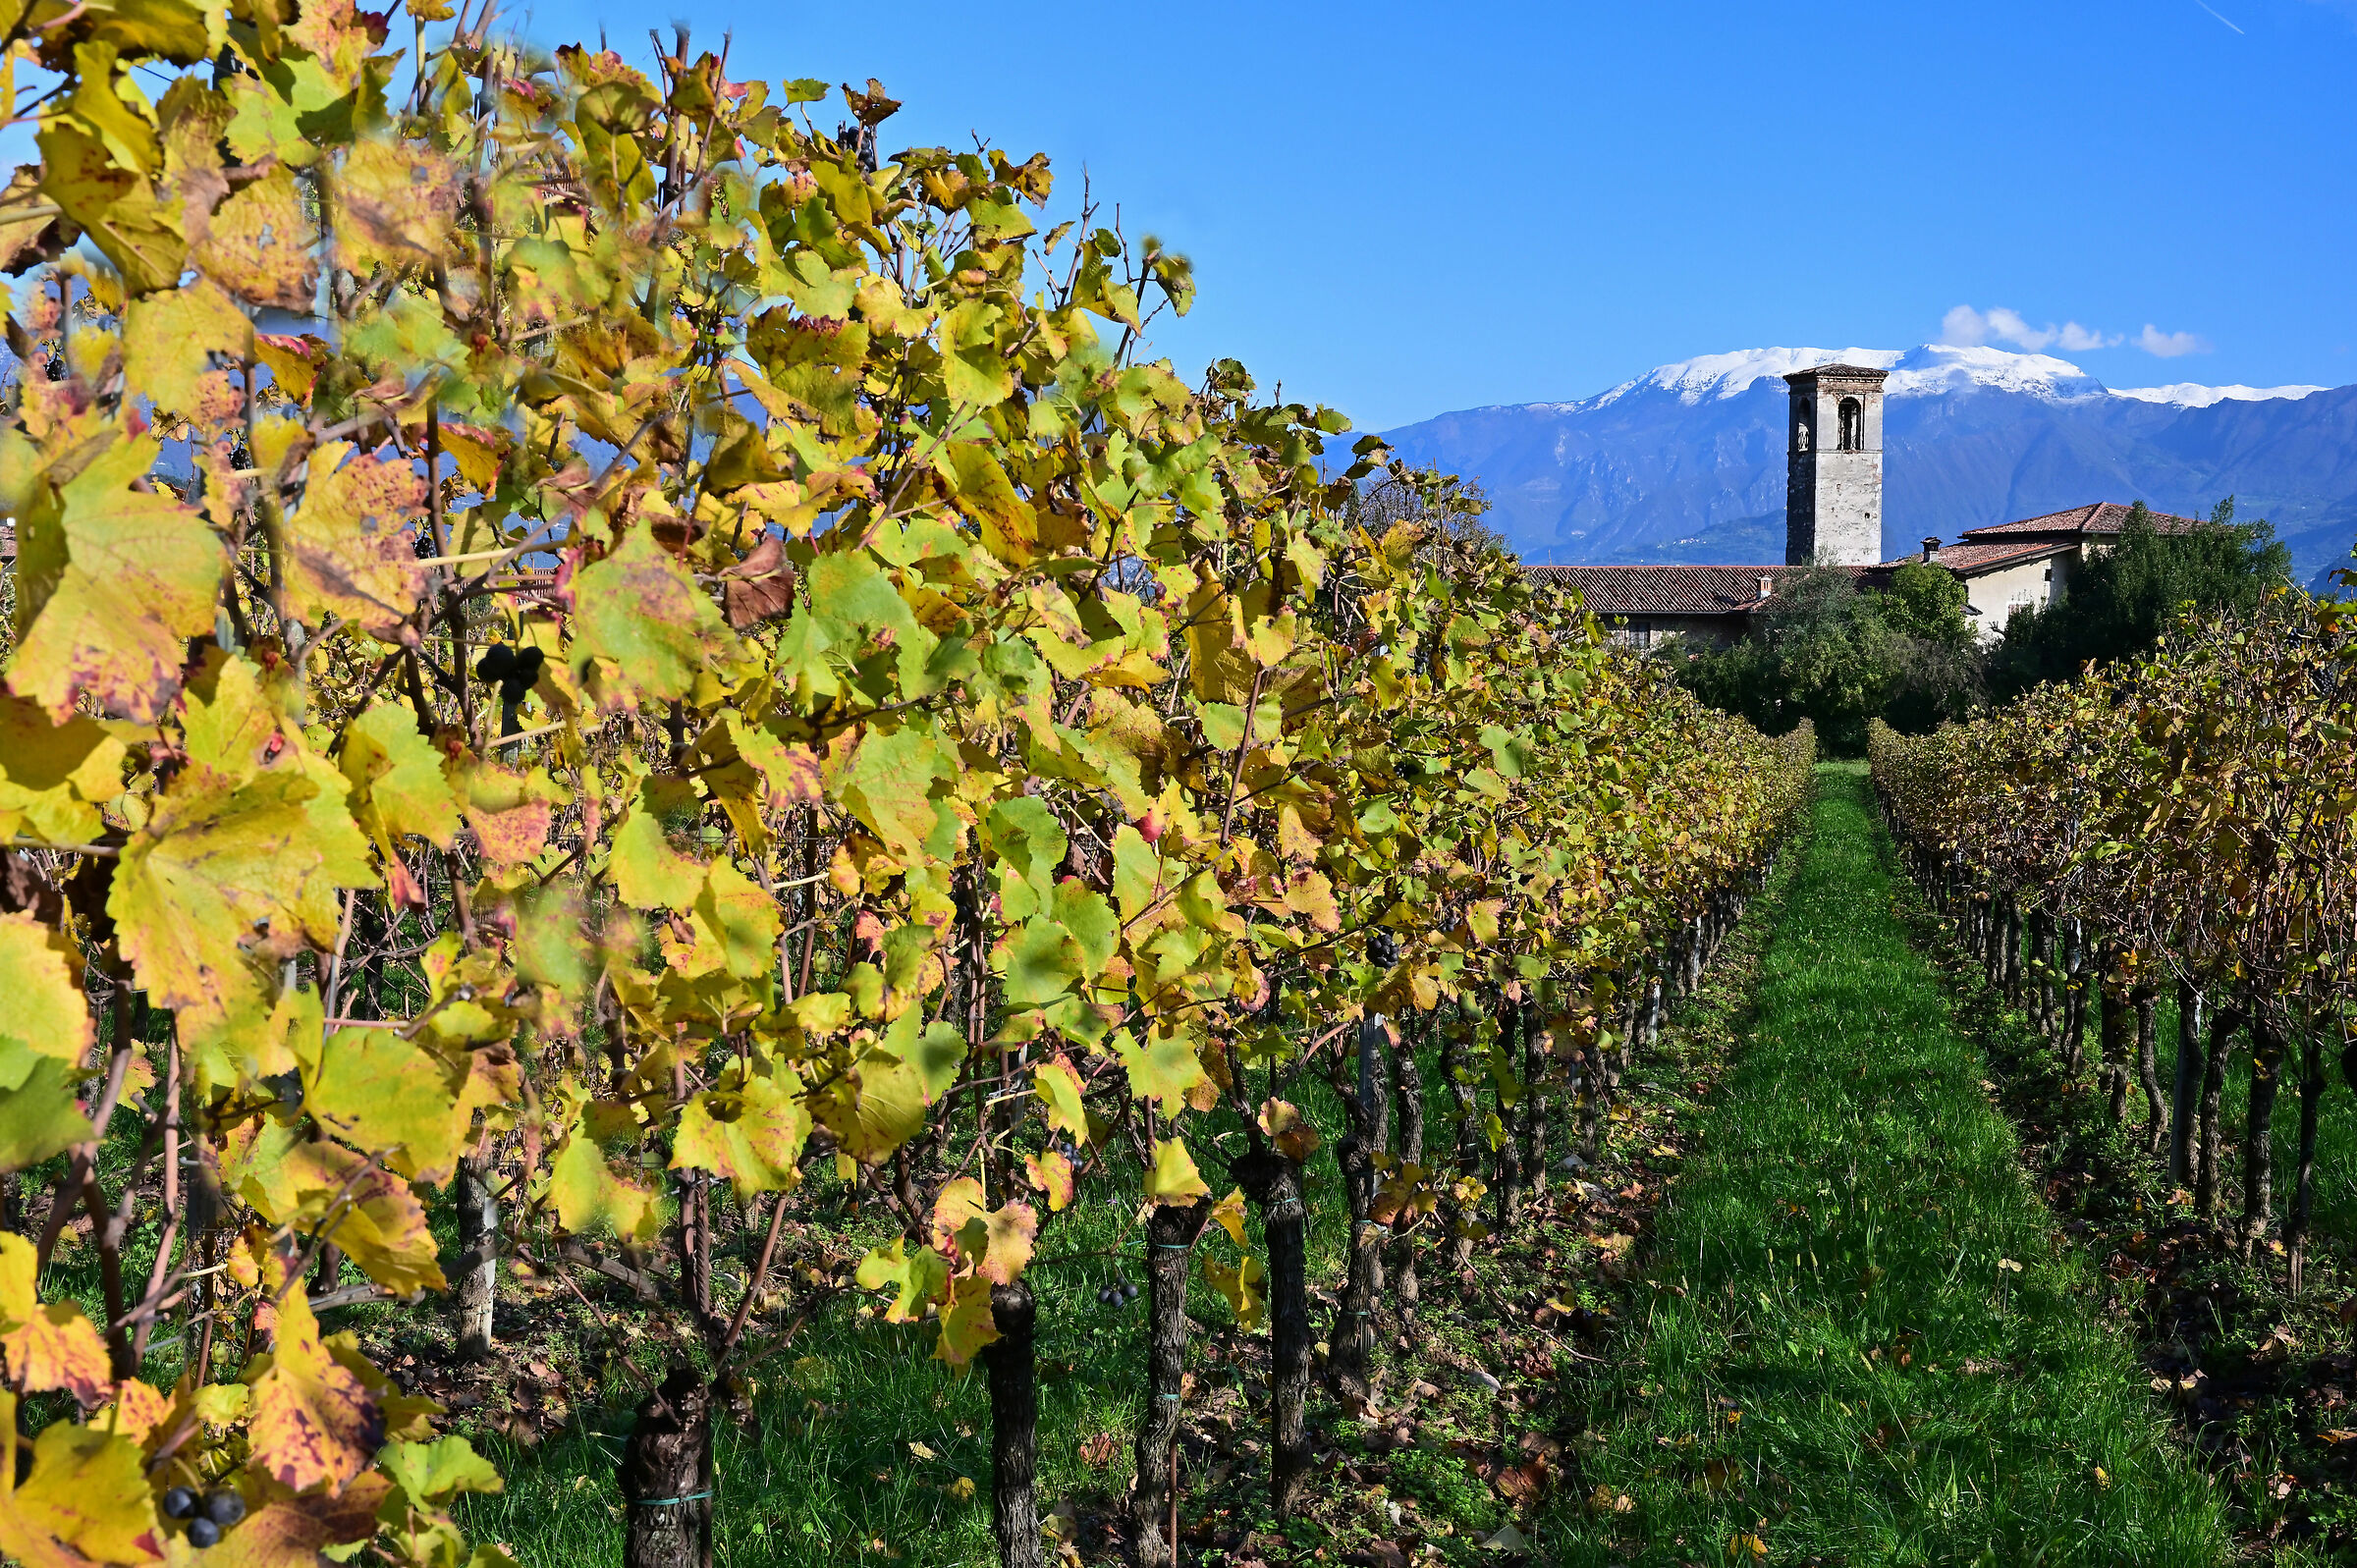 Adro-even this is Franciacorta....